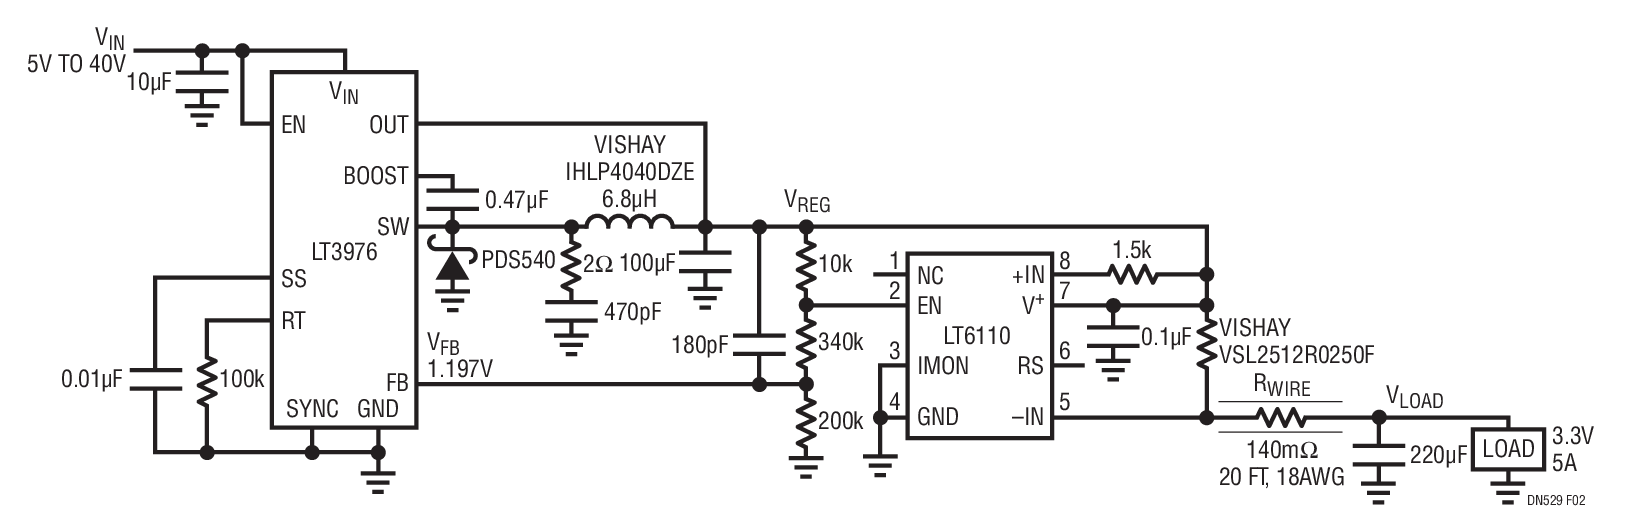 small resolution of control the voltage of a remote load over any length of copper wire rh analog com generator voltage regulator wiring diagram regulator rectifier wiring